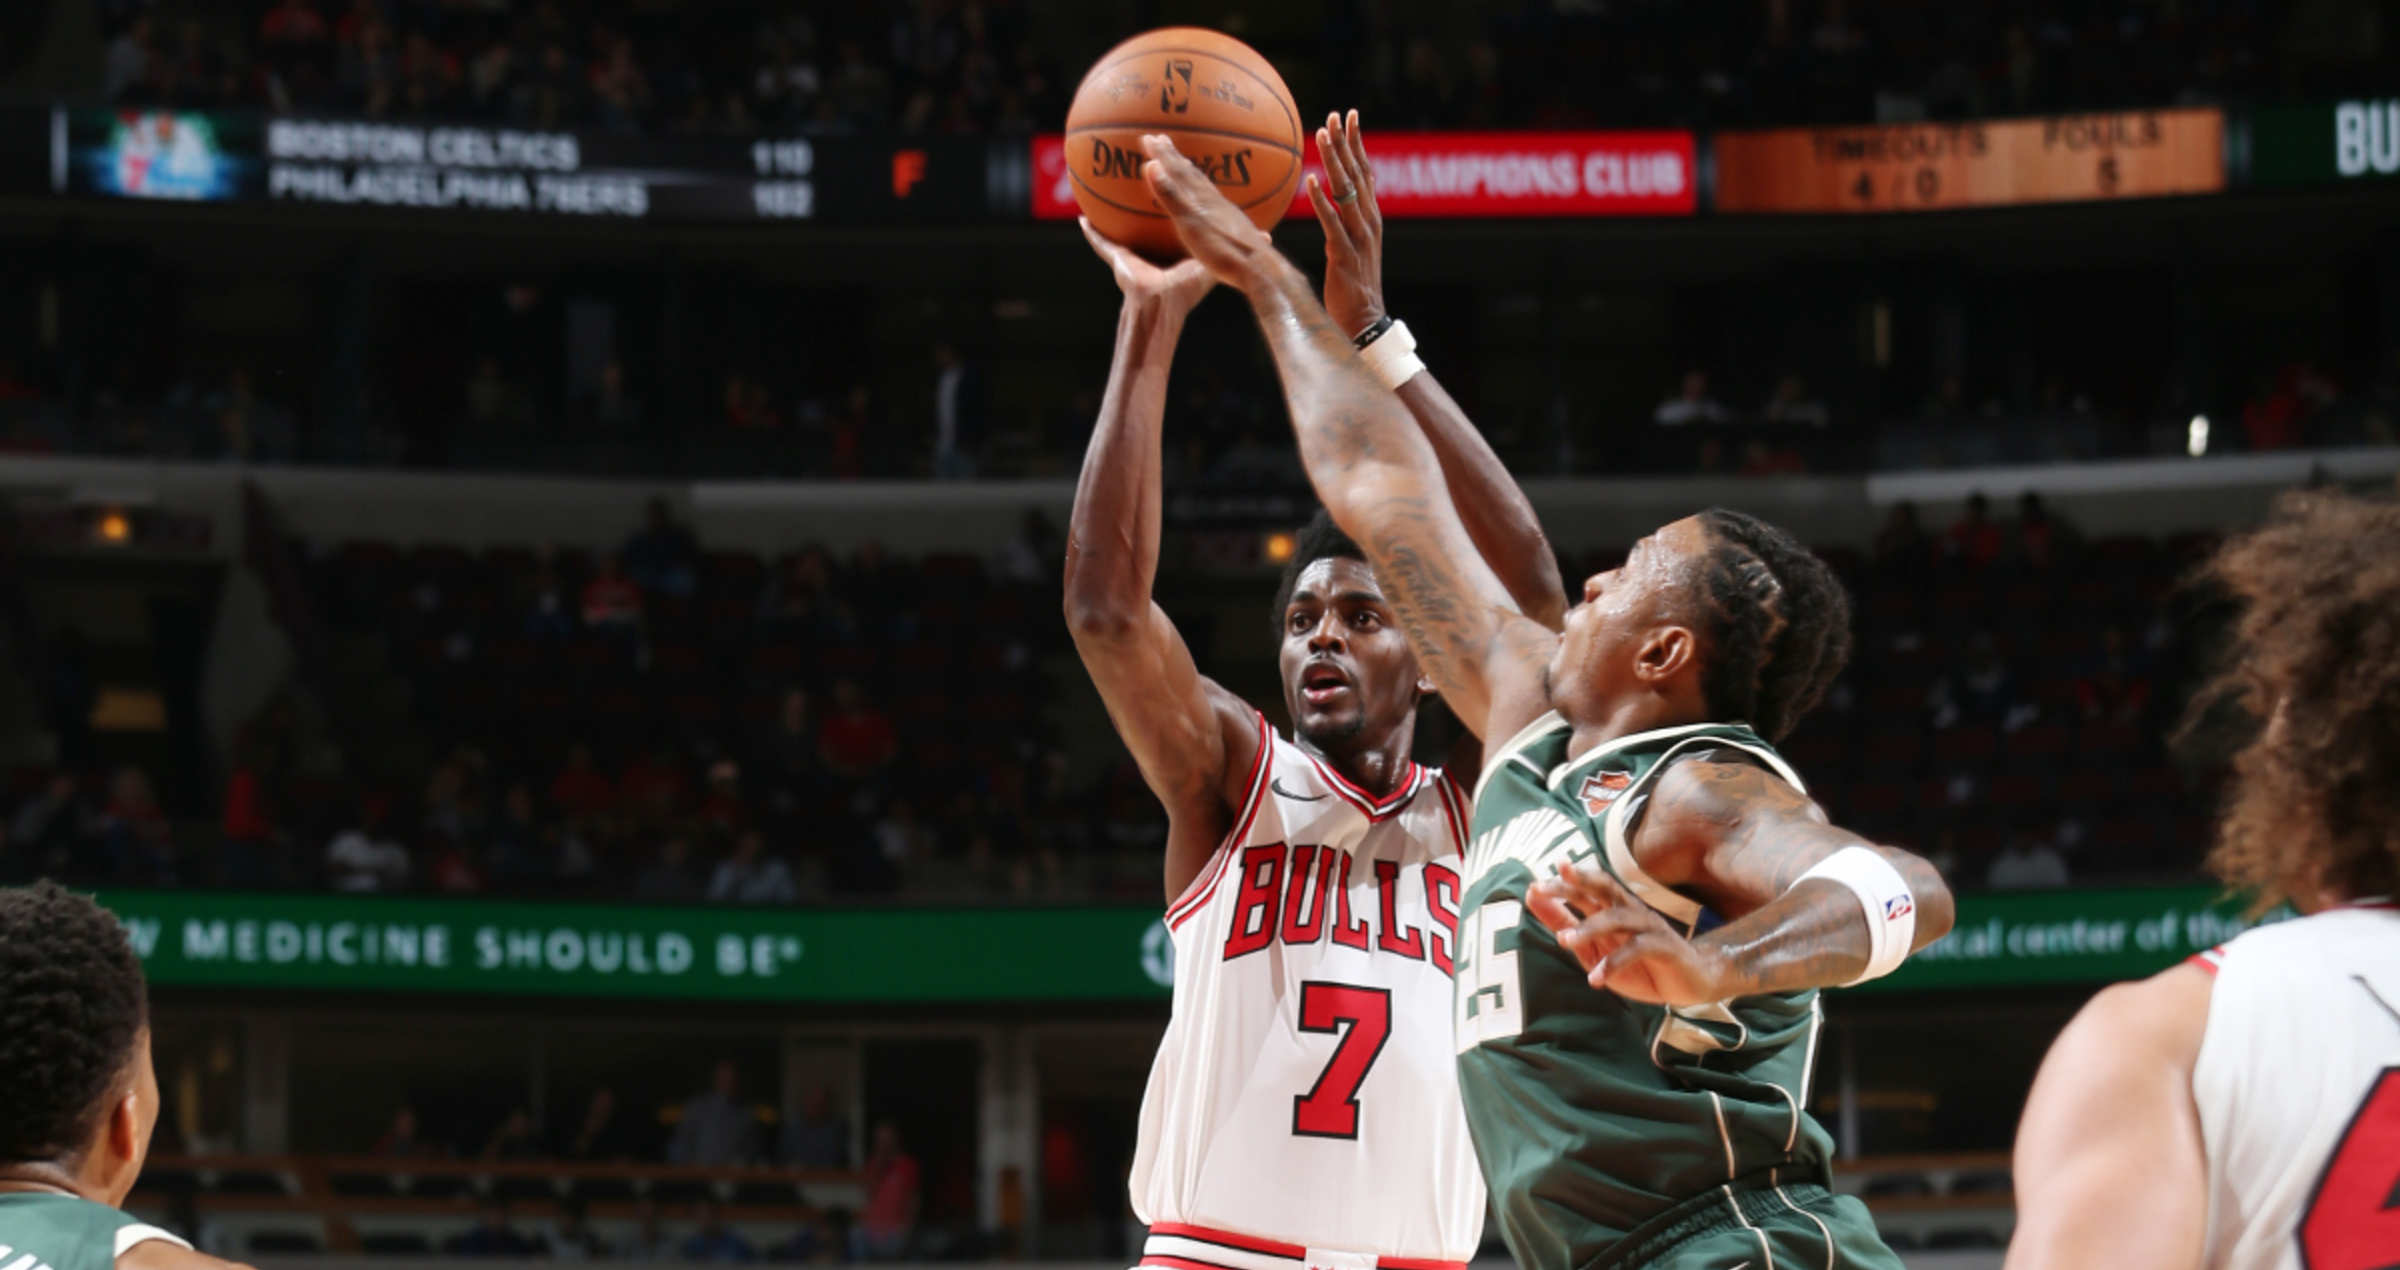 Justin Holiday of the Chicago Bulls attempting a jumper against players of the Milwaukee Bucks at the United Center, October 6, 2017